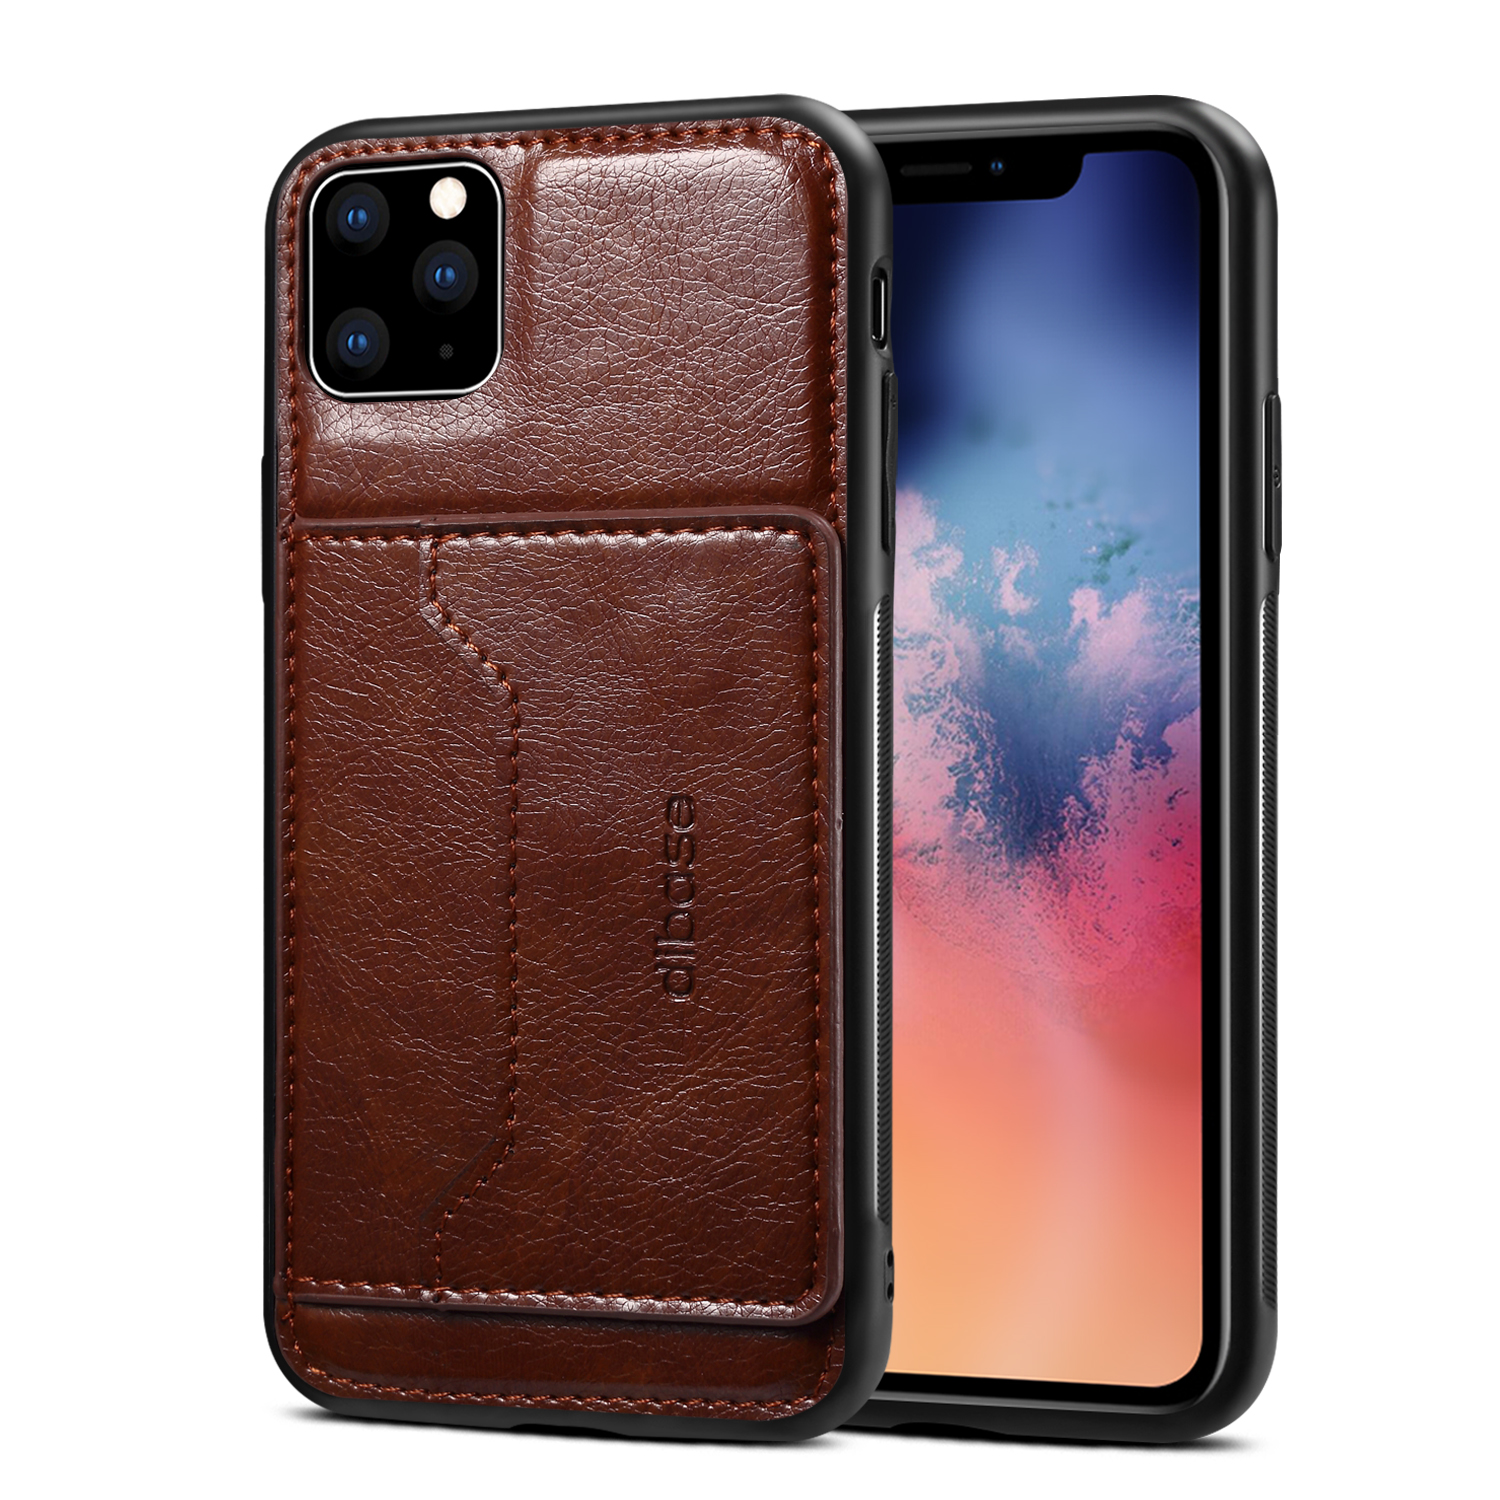 For iPhone 11/11 Pro/11 Pro Max Cellphone Smart Shell 2-in-1 Textured PU Leather Shock-Absorption Anti-Fall Card Holder Stand Function Phone Cover coffee